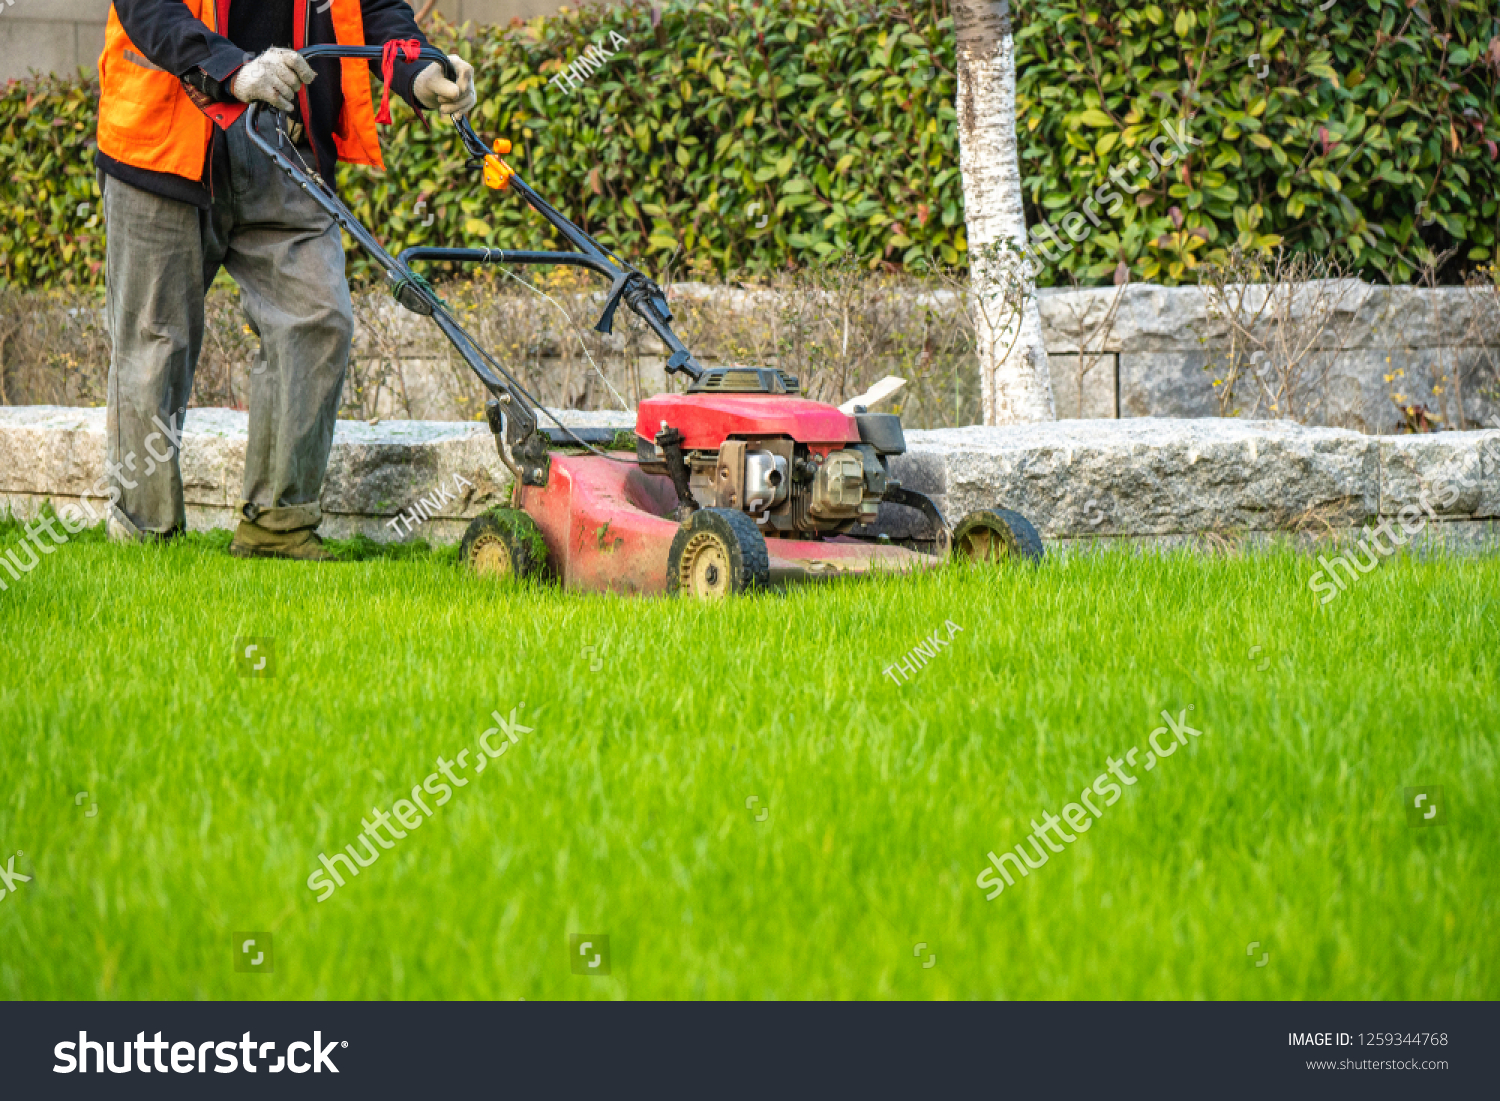 worker mowing lawns during sunset #1259344768